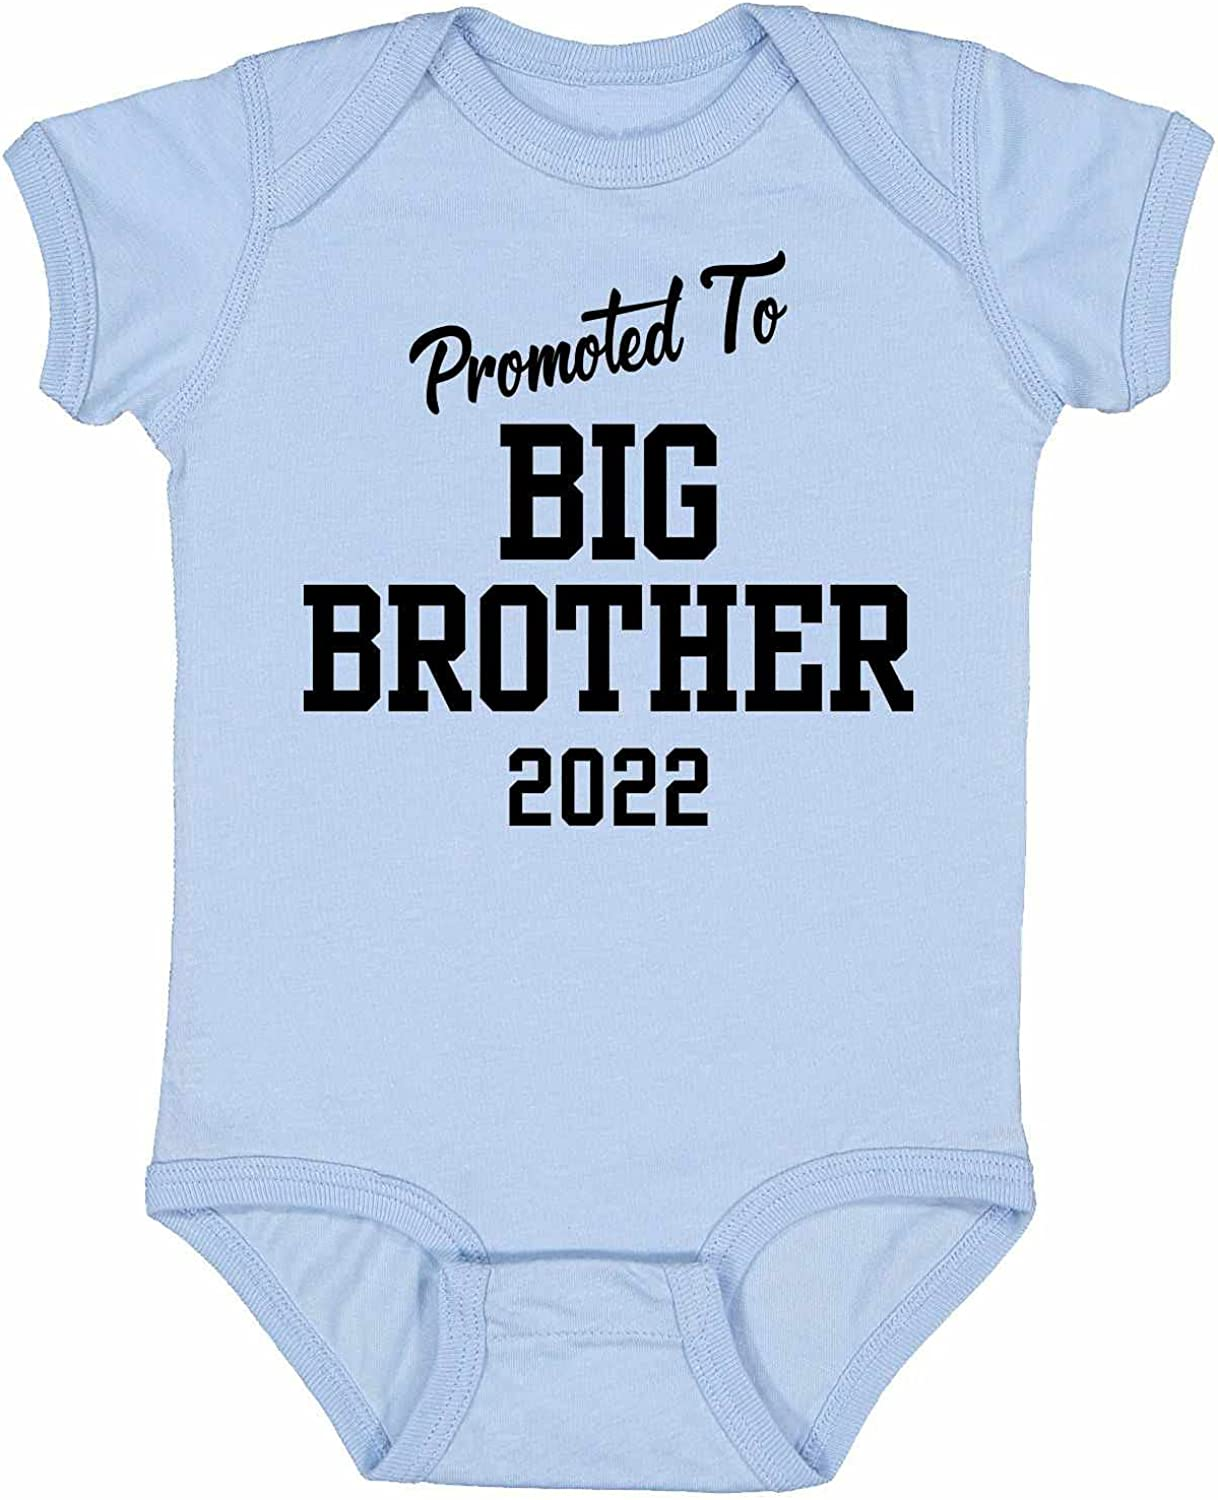 National products Promoted to Big Brother Bodysuit 2022 Infant - Special Campaign